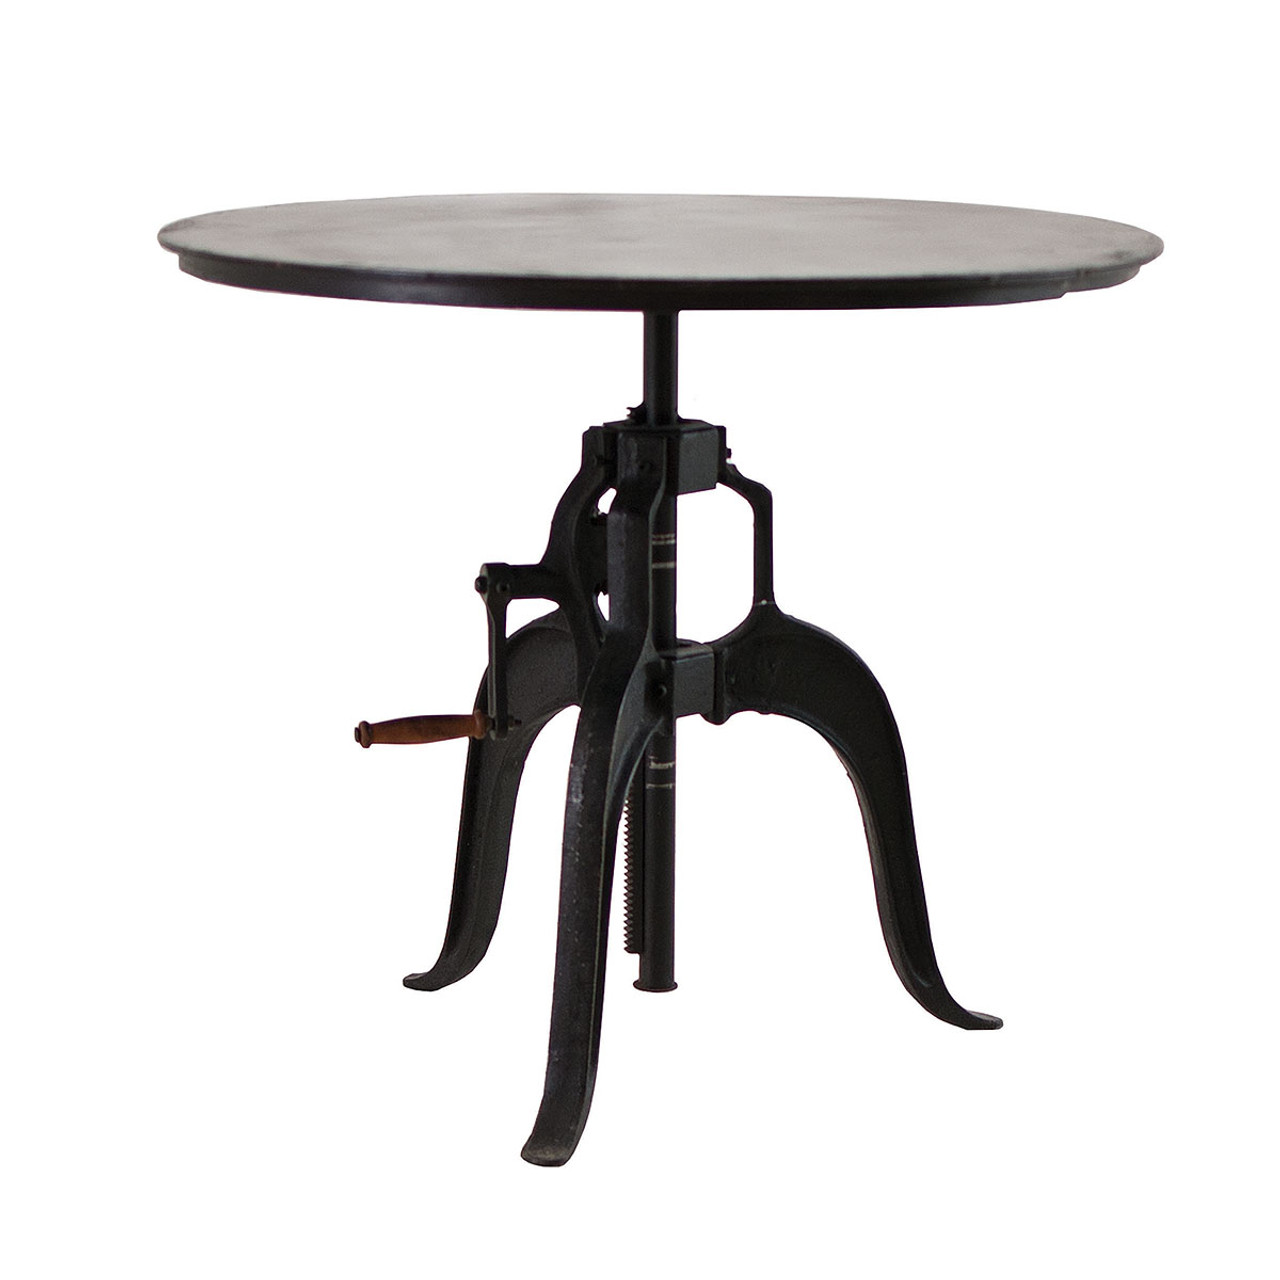 Adjustable height crank dining table 36 zin home adjustable height crank dining table 36 geotapseo Image collections